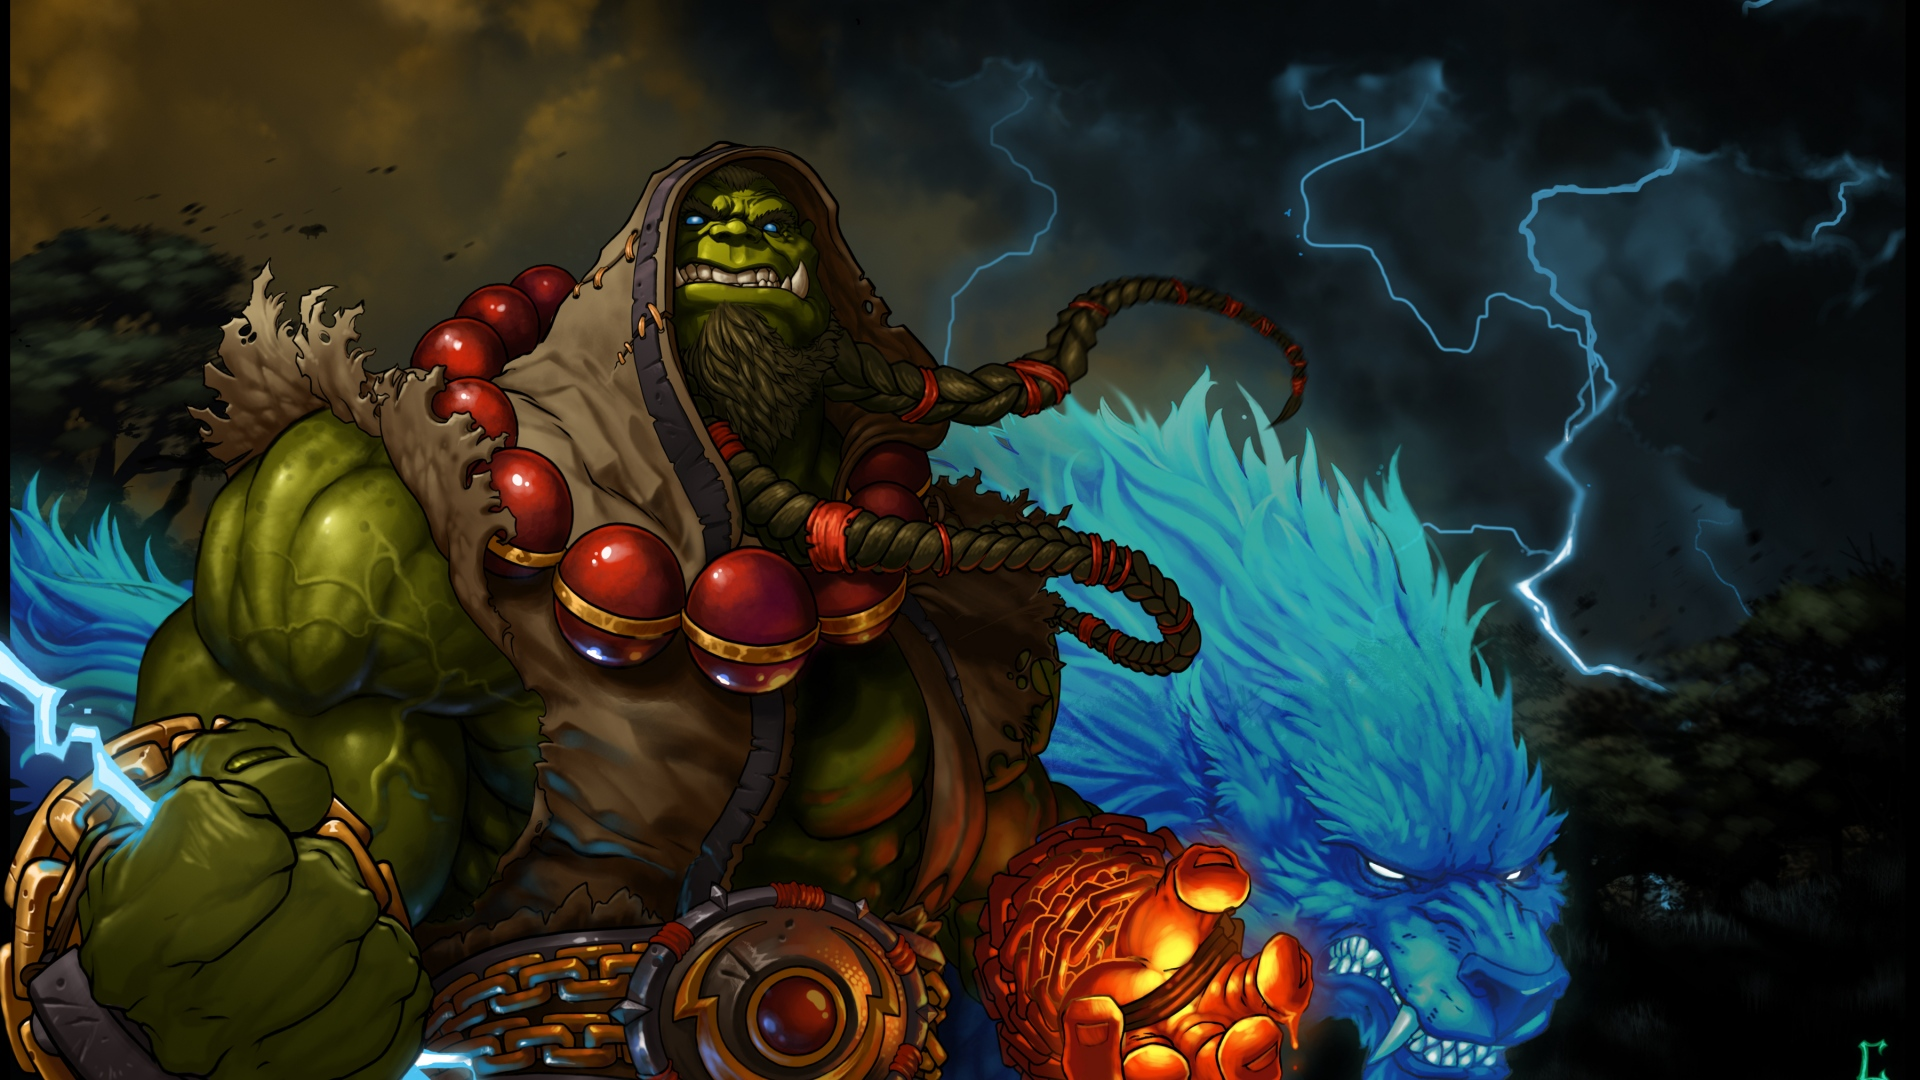 hd hintergrundbilder orc schamane world of warcraft blizzard thrall blitz 1920x1080